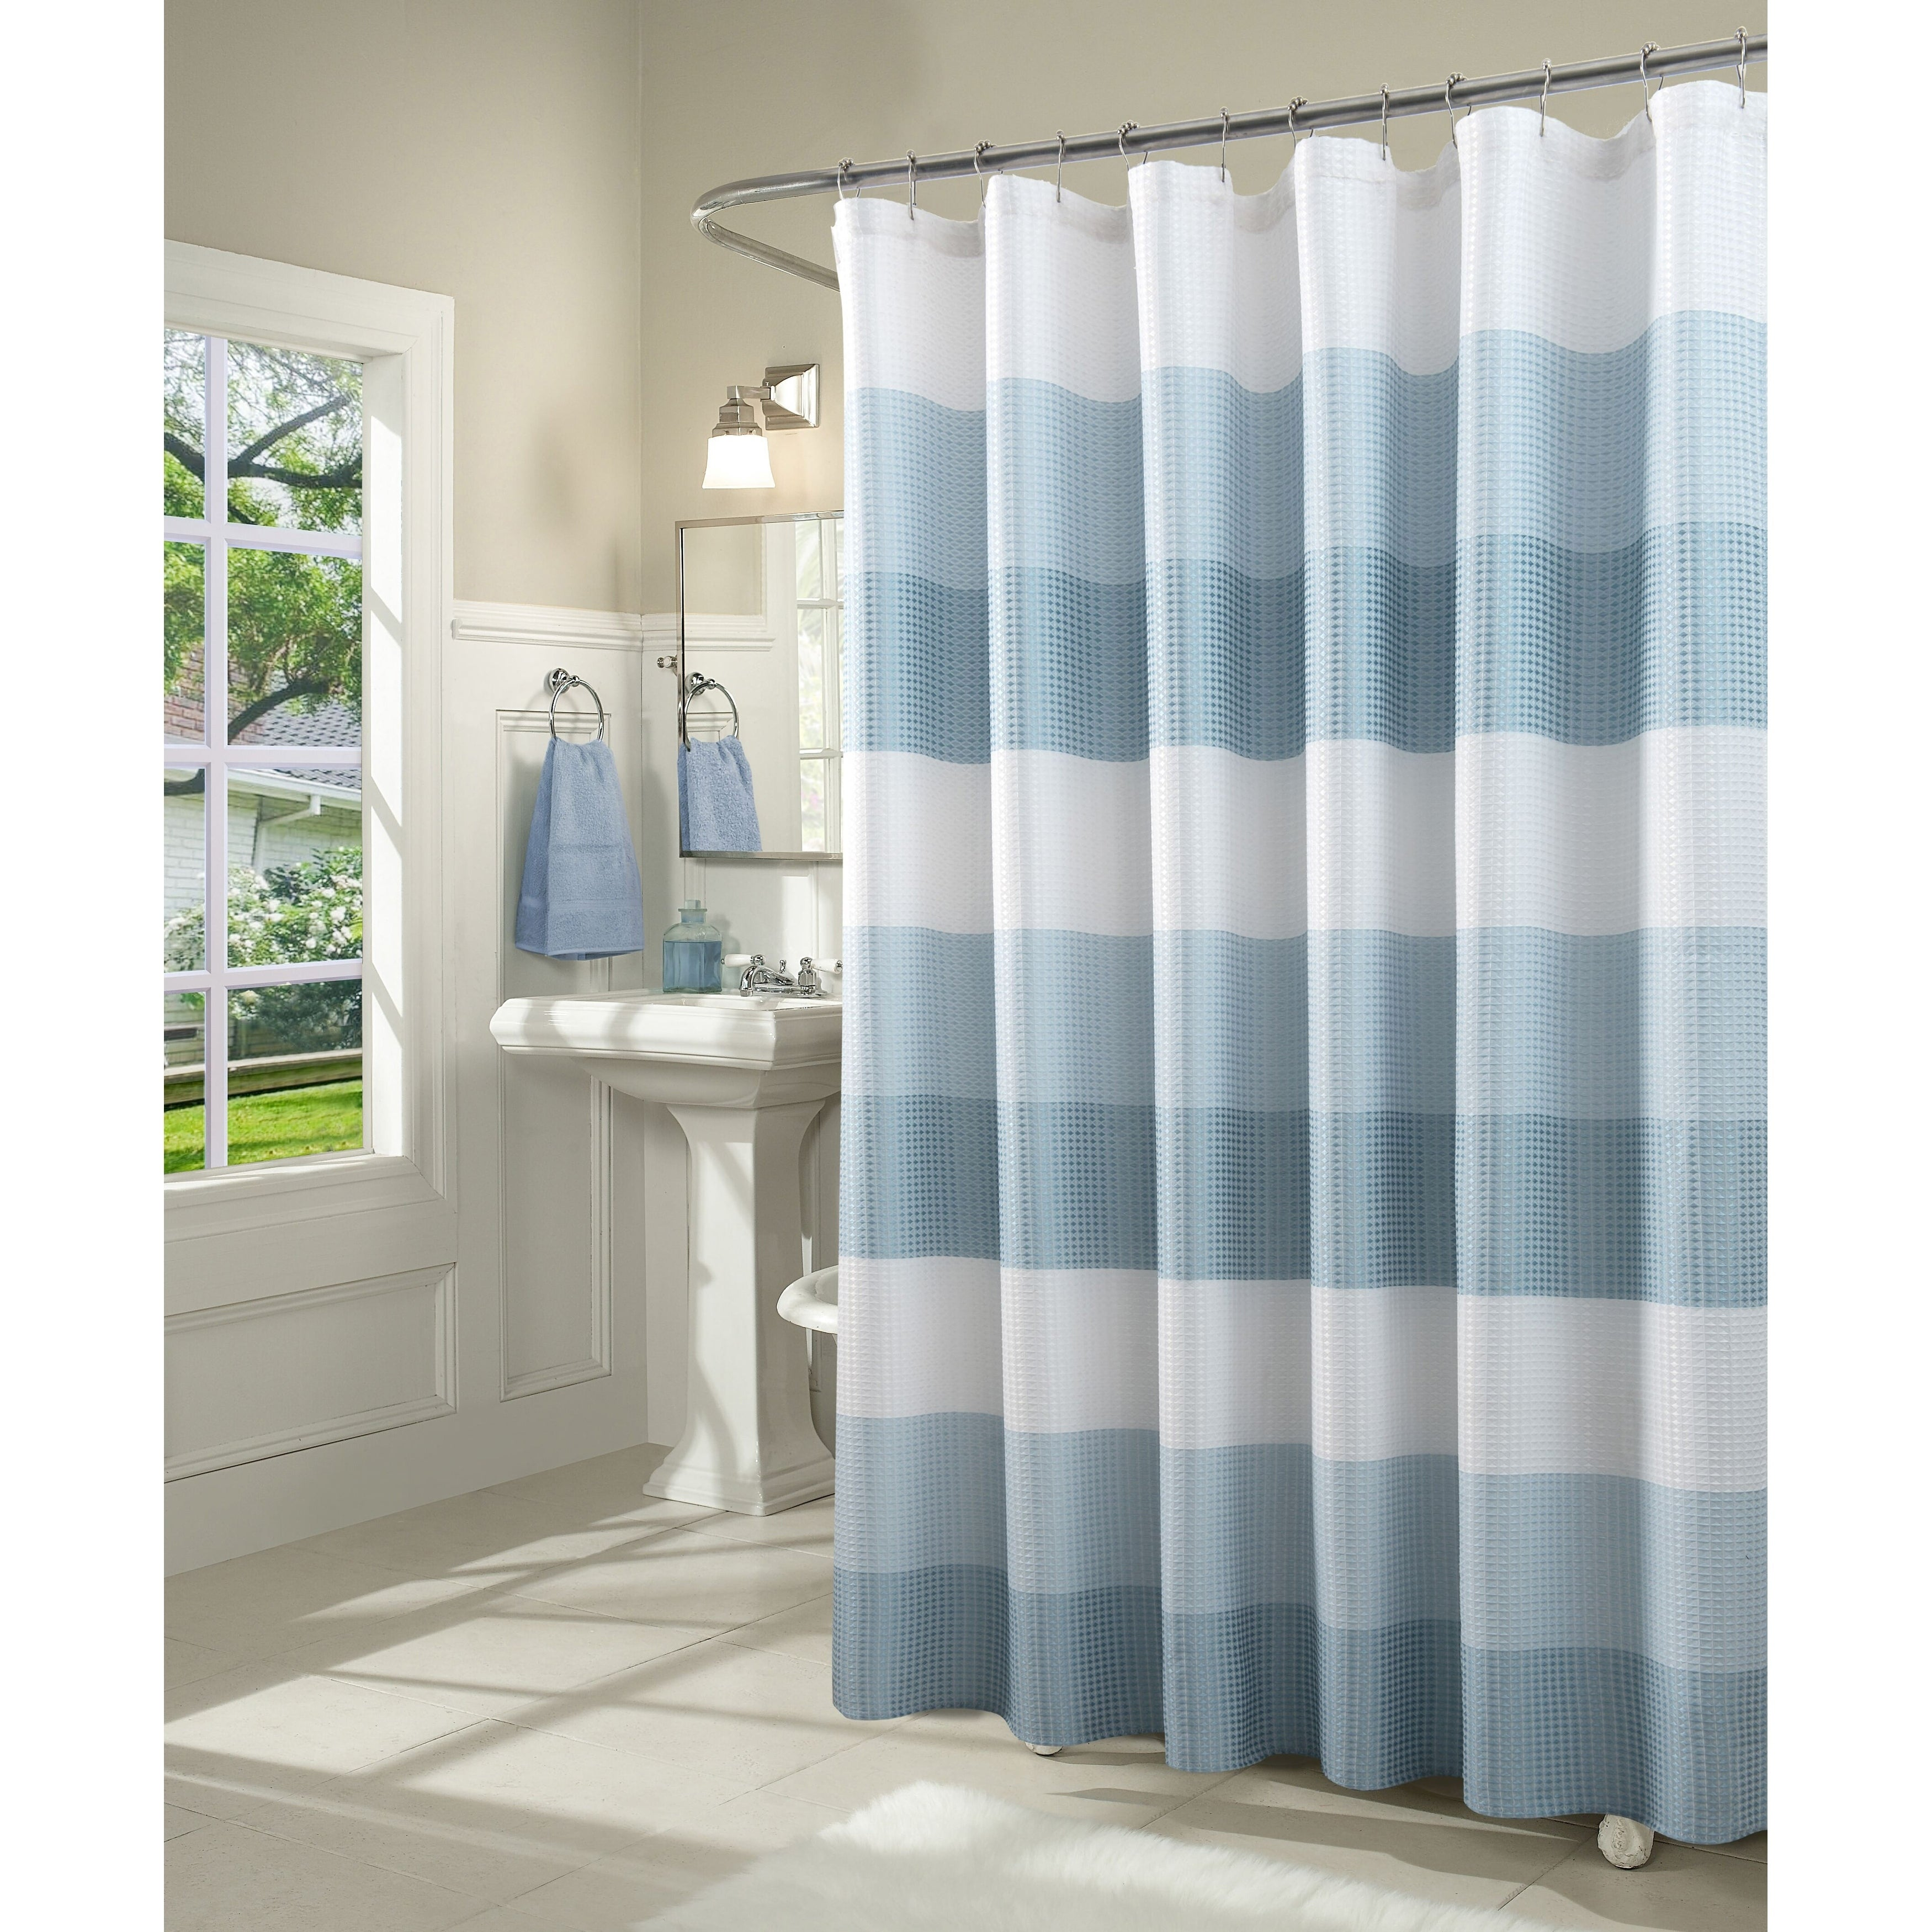 Shop Dainty Home Ombre Waffle Weave Fabric Shower Curtain Overstock 25716165